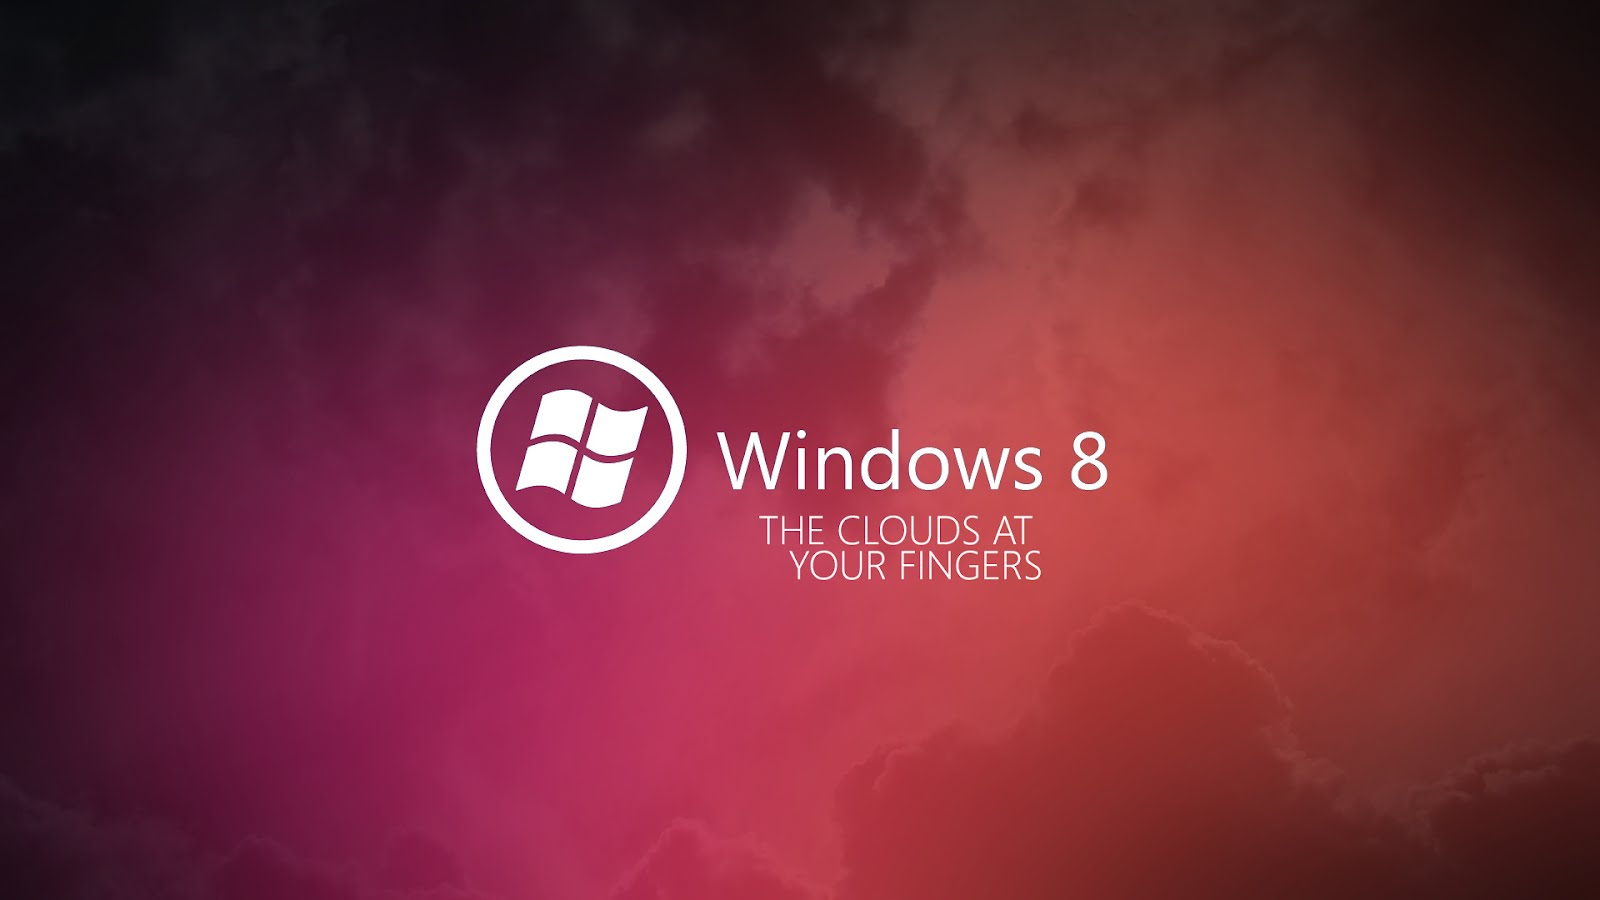 Windows 8 Touch, HD Wallpaper